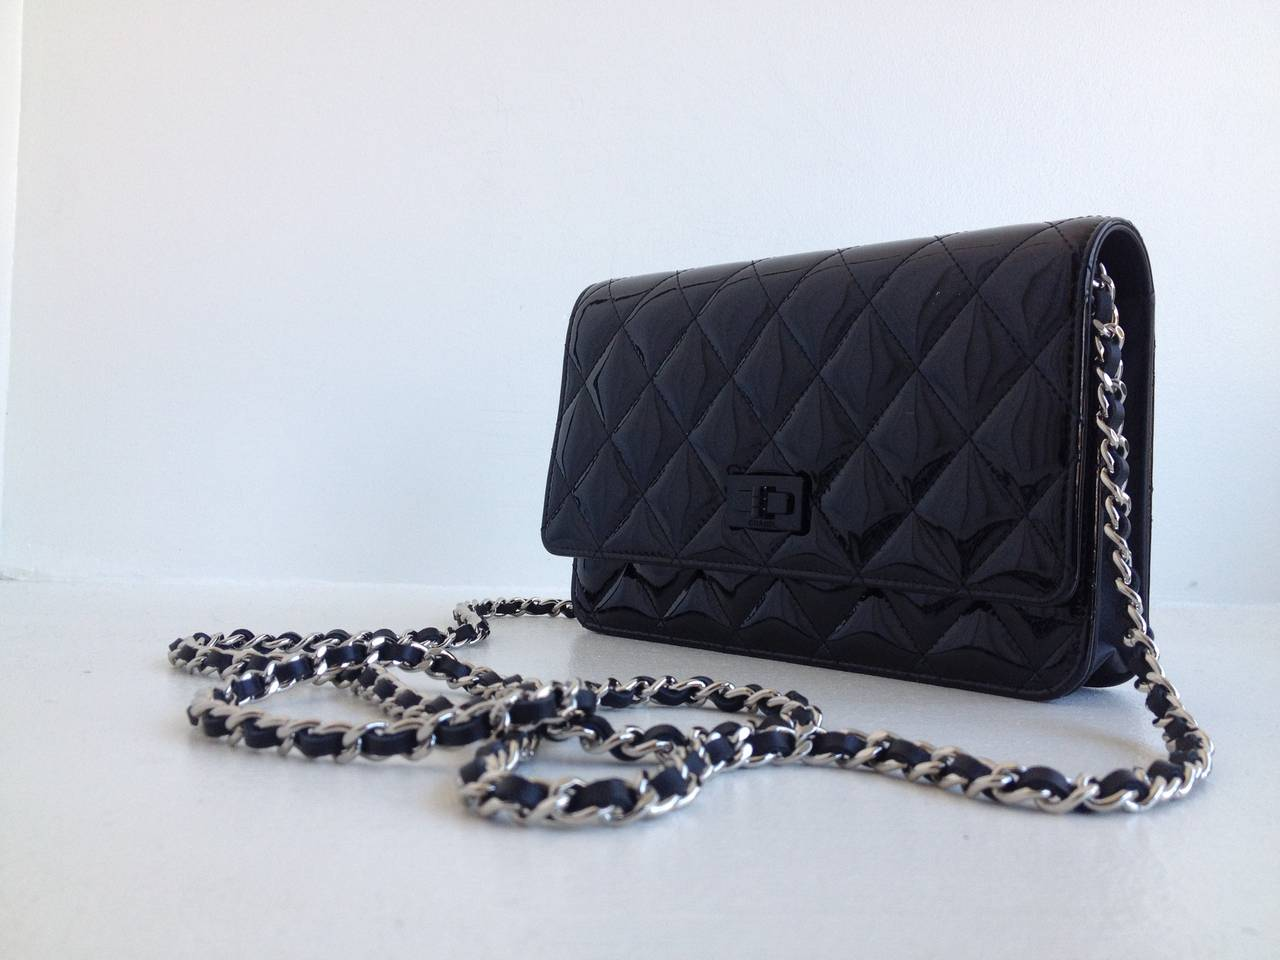 b36f0053c9b Chanel Black Patent Mini Clutch Purse For Sale. There s nothing more  perfect than classic Chanel! This little clutch pays homage to the legendary